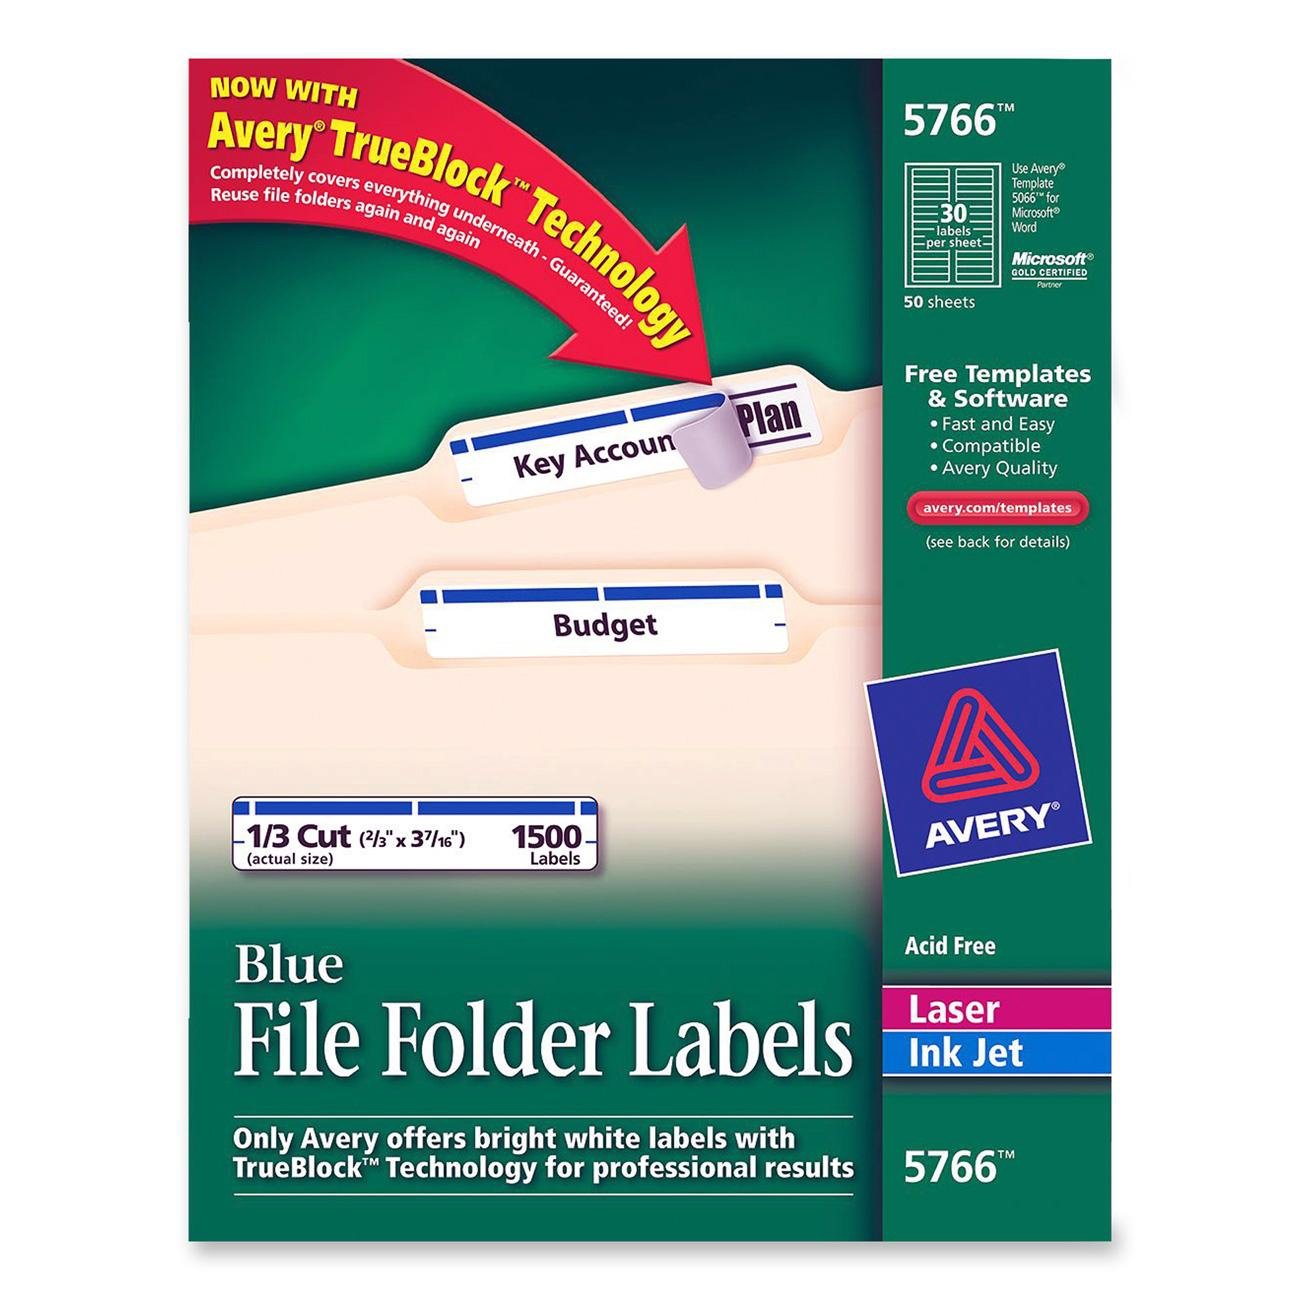 Amazon.com : Avery Blue File Folder Labels for Laser and Inkjet ...